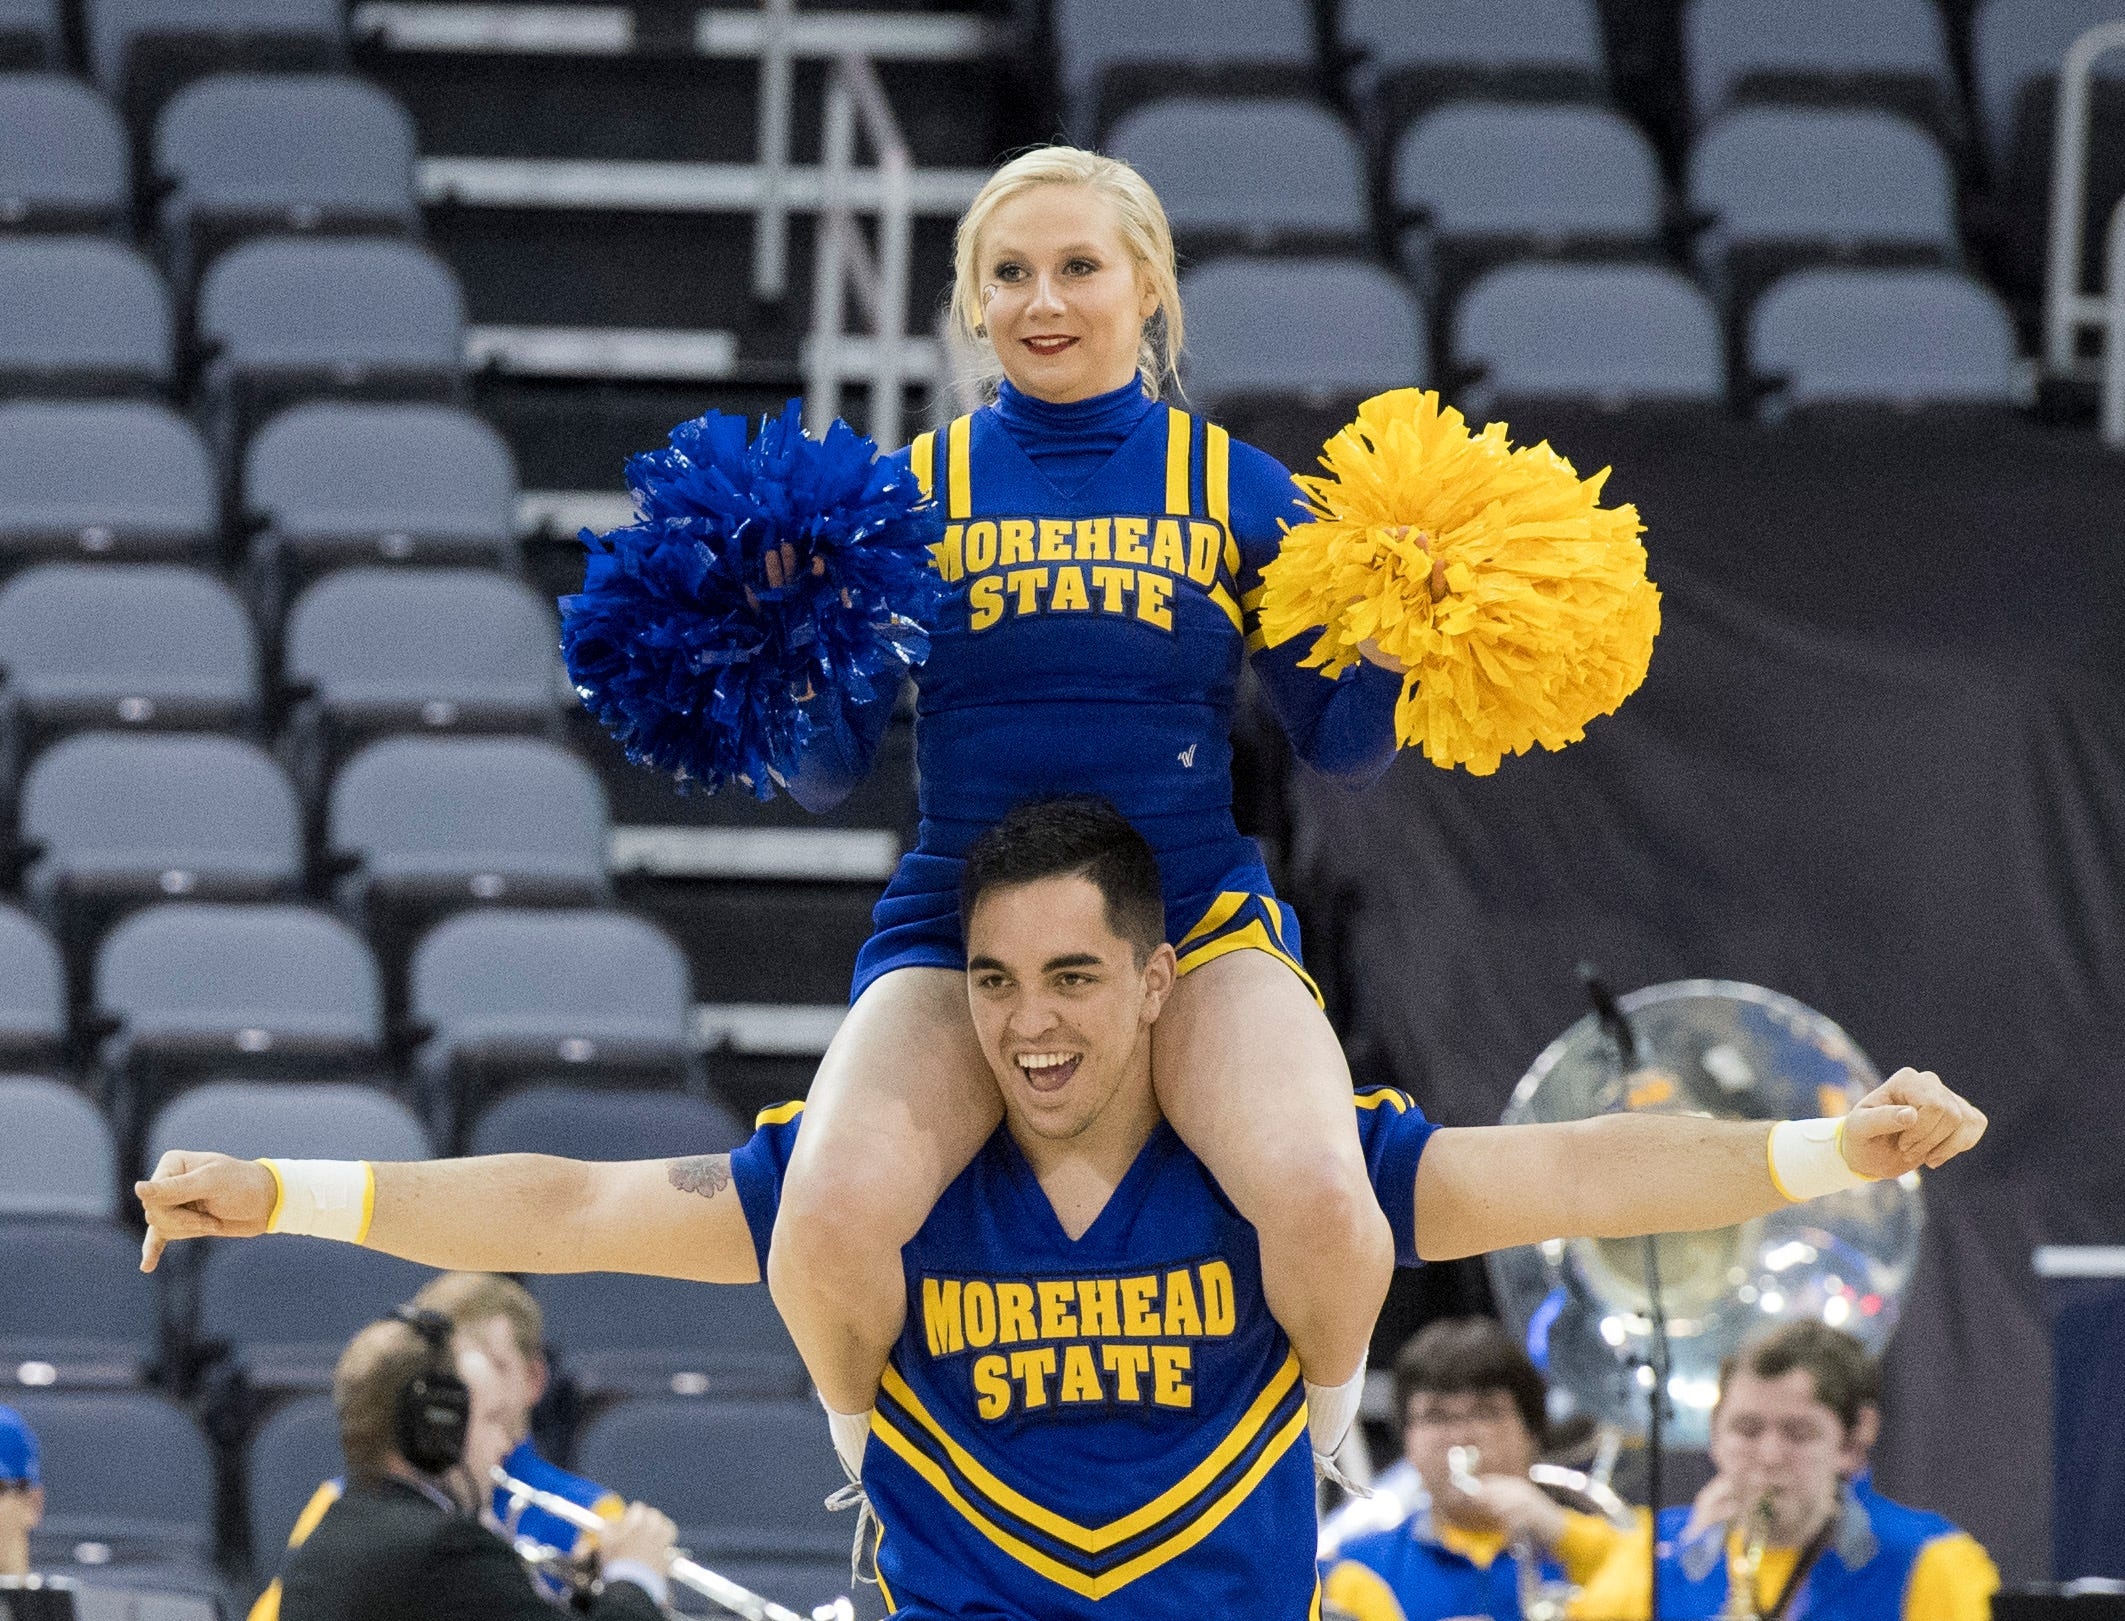 Morehead State Eagles cheerleaders Jennifer Creech and Jona Marrero dance during a time out of the Morehead State vs UT Martin game of the Ohio Valley Conference Tournament at the Ford Center in Evansville, Ind., Friday, March 8, 2019.